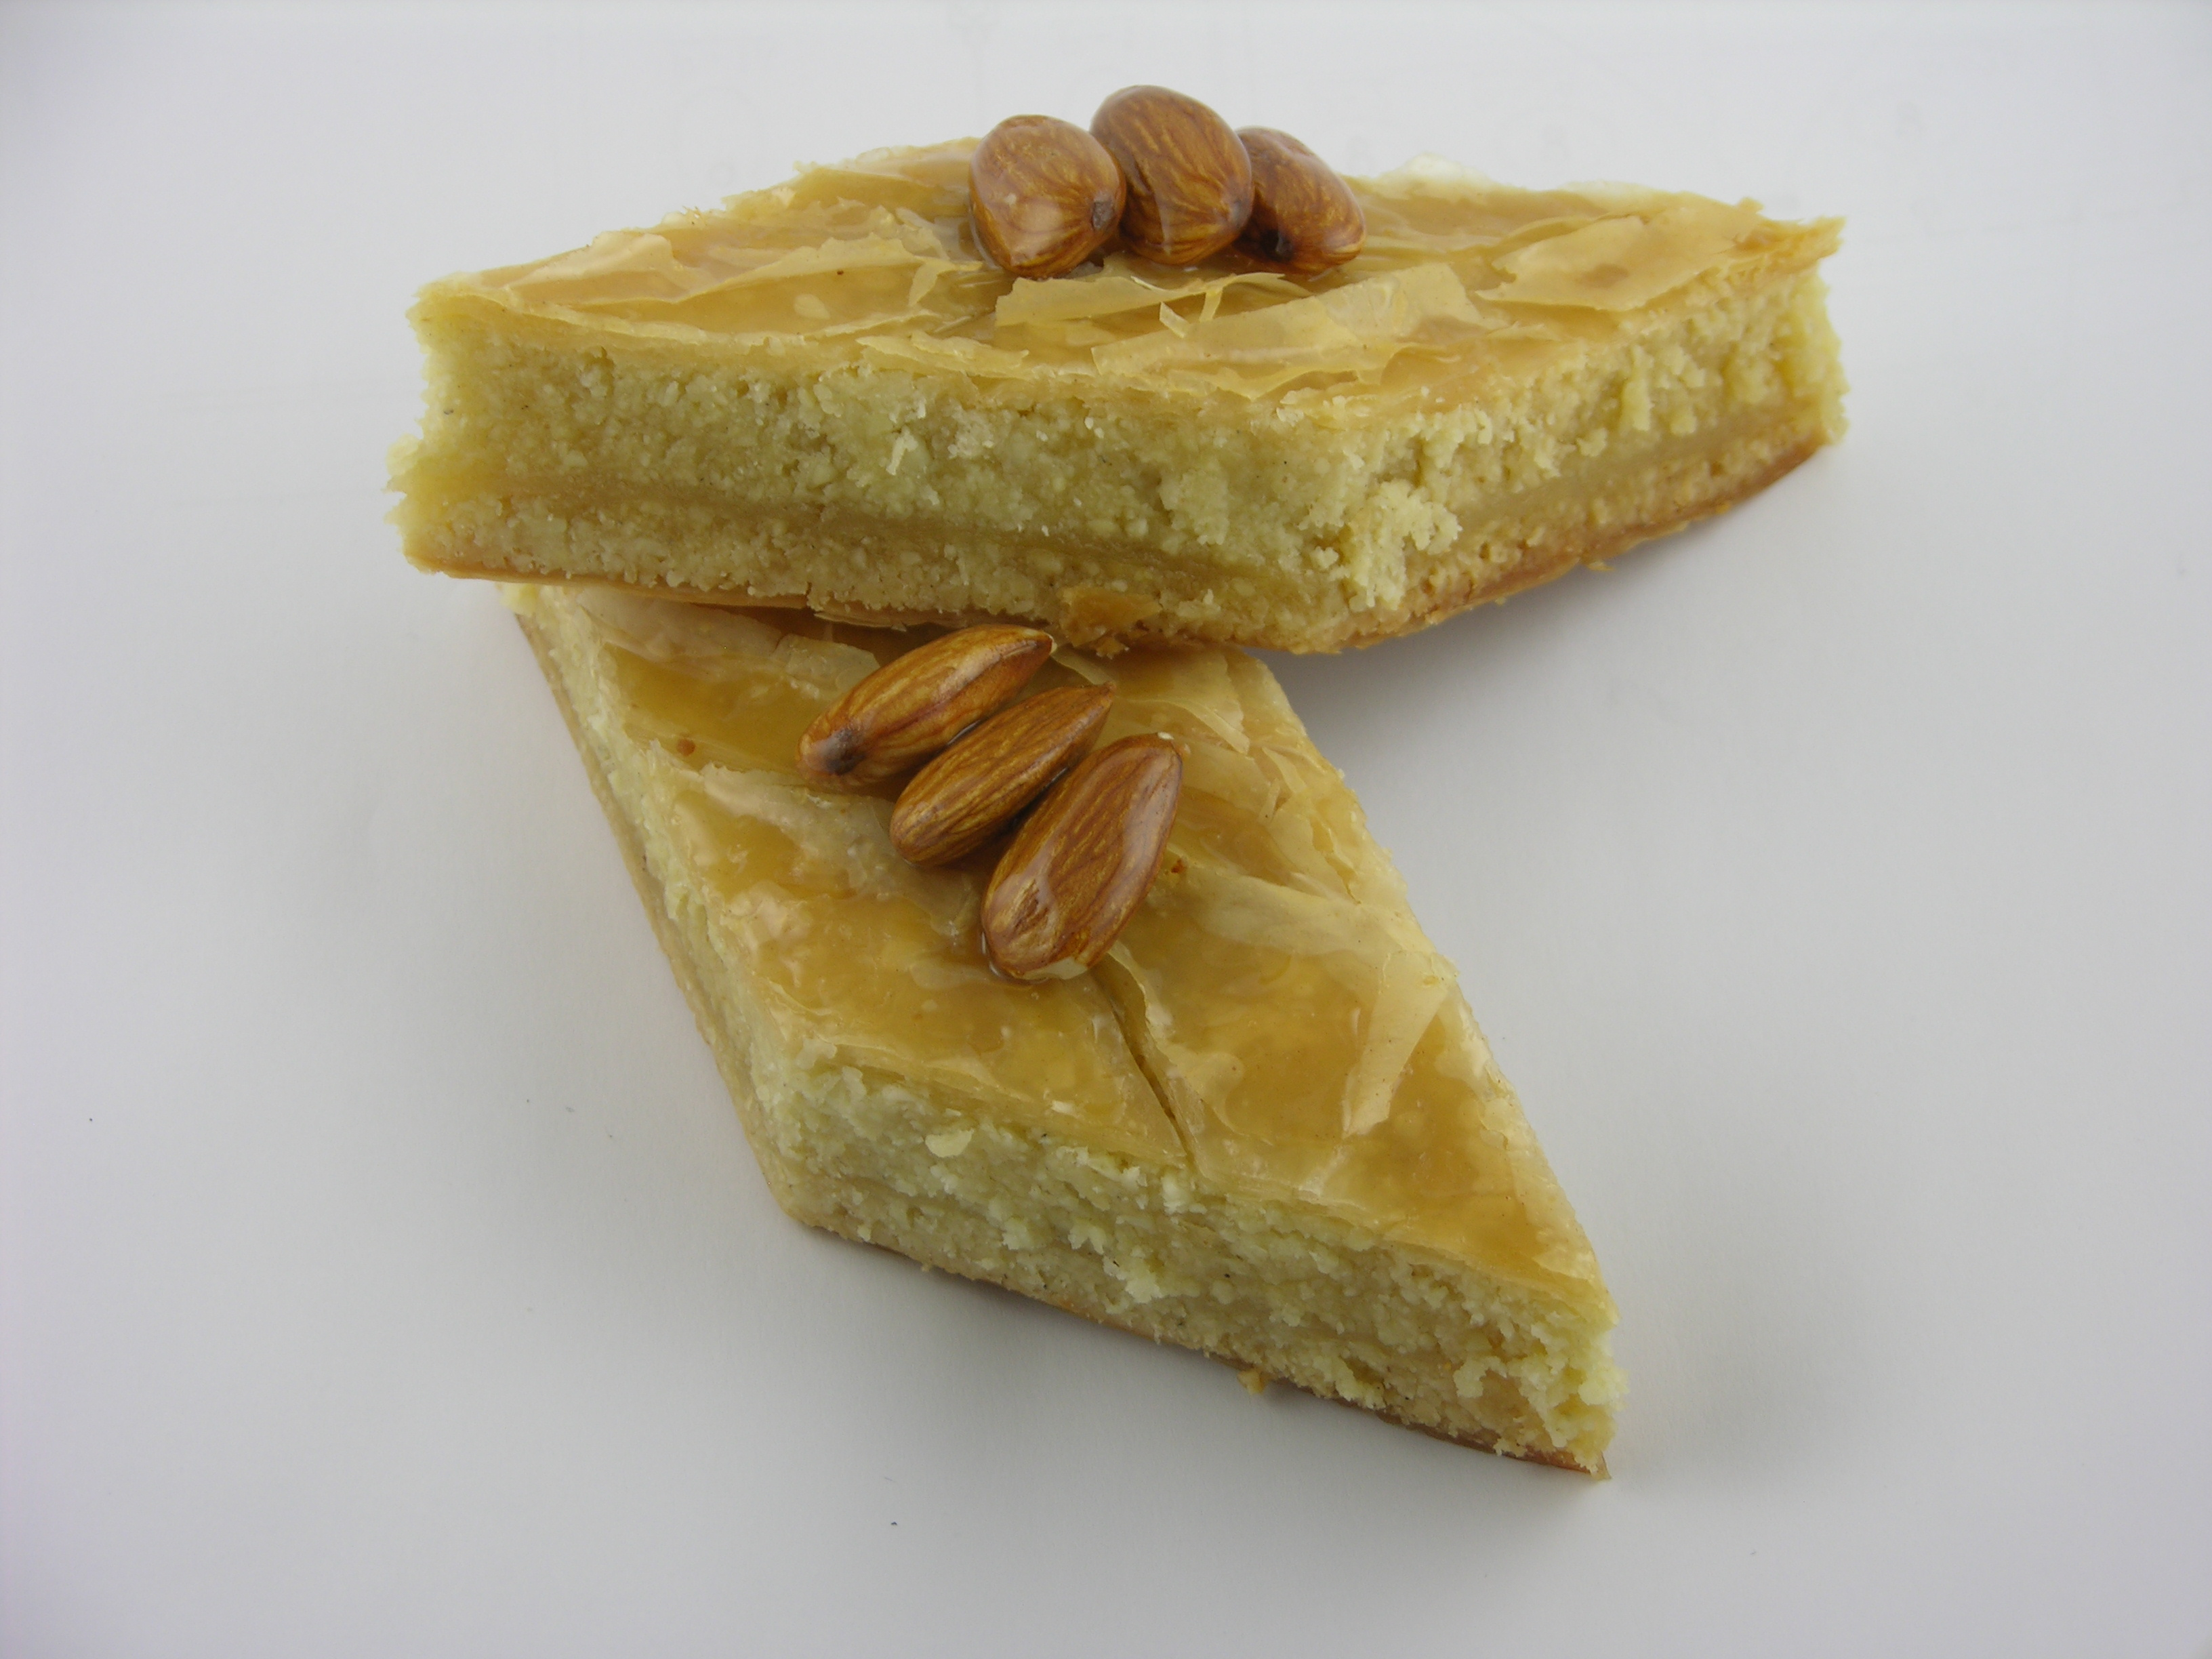 You are here: Home / Shop / Baklava / Almond Baklava – Diamond